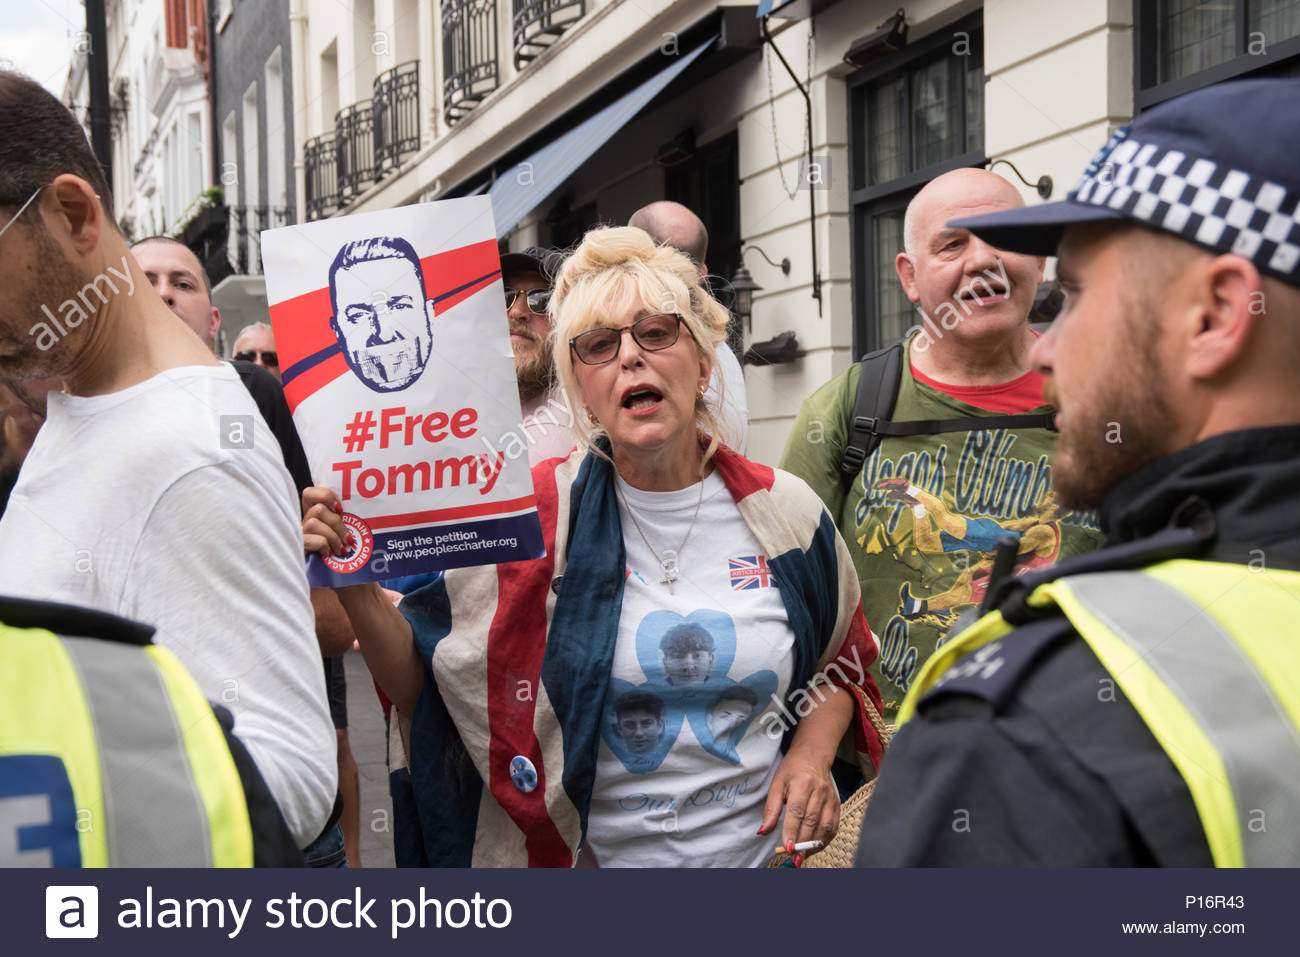 London United Kingdom 10 June 2018 A supporter of former leader of the anti-immigrant EDL Tommy Robinson holds a sign reading 'Tommy Robinson' as Pro-Palestinian demonstrators rally outside of the Saudi Arabian Embassy in London for Al Quds Day on June 10, 2018. The annual Al-Quds march is held around the world during the last week of Ramadan and was initiated in 1979 to express support for the Palestinians and oppose Zionism and Israel. (c) copyright CrowdSpark/See LI - Stock Image